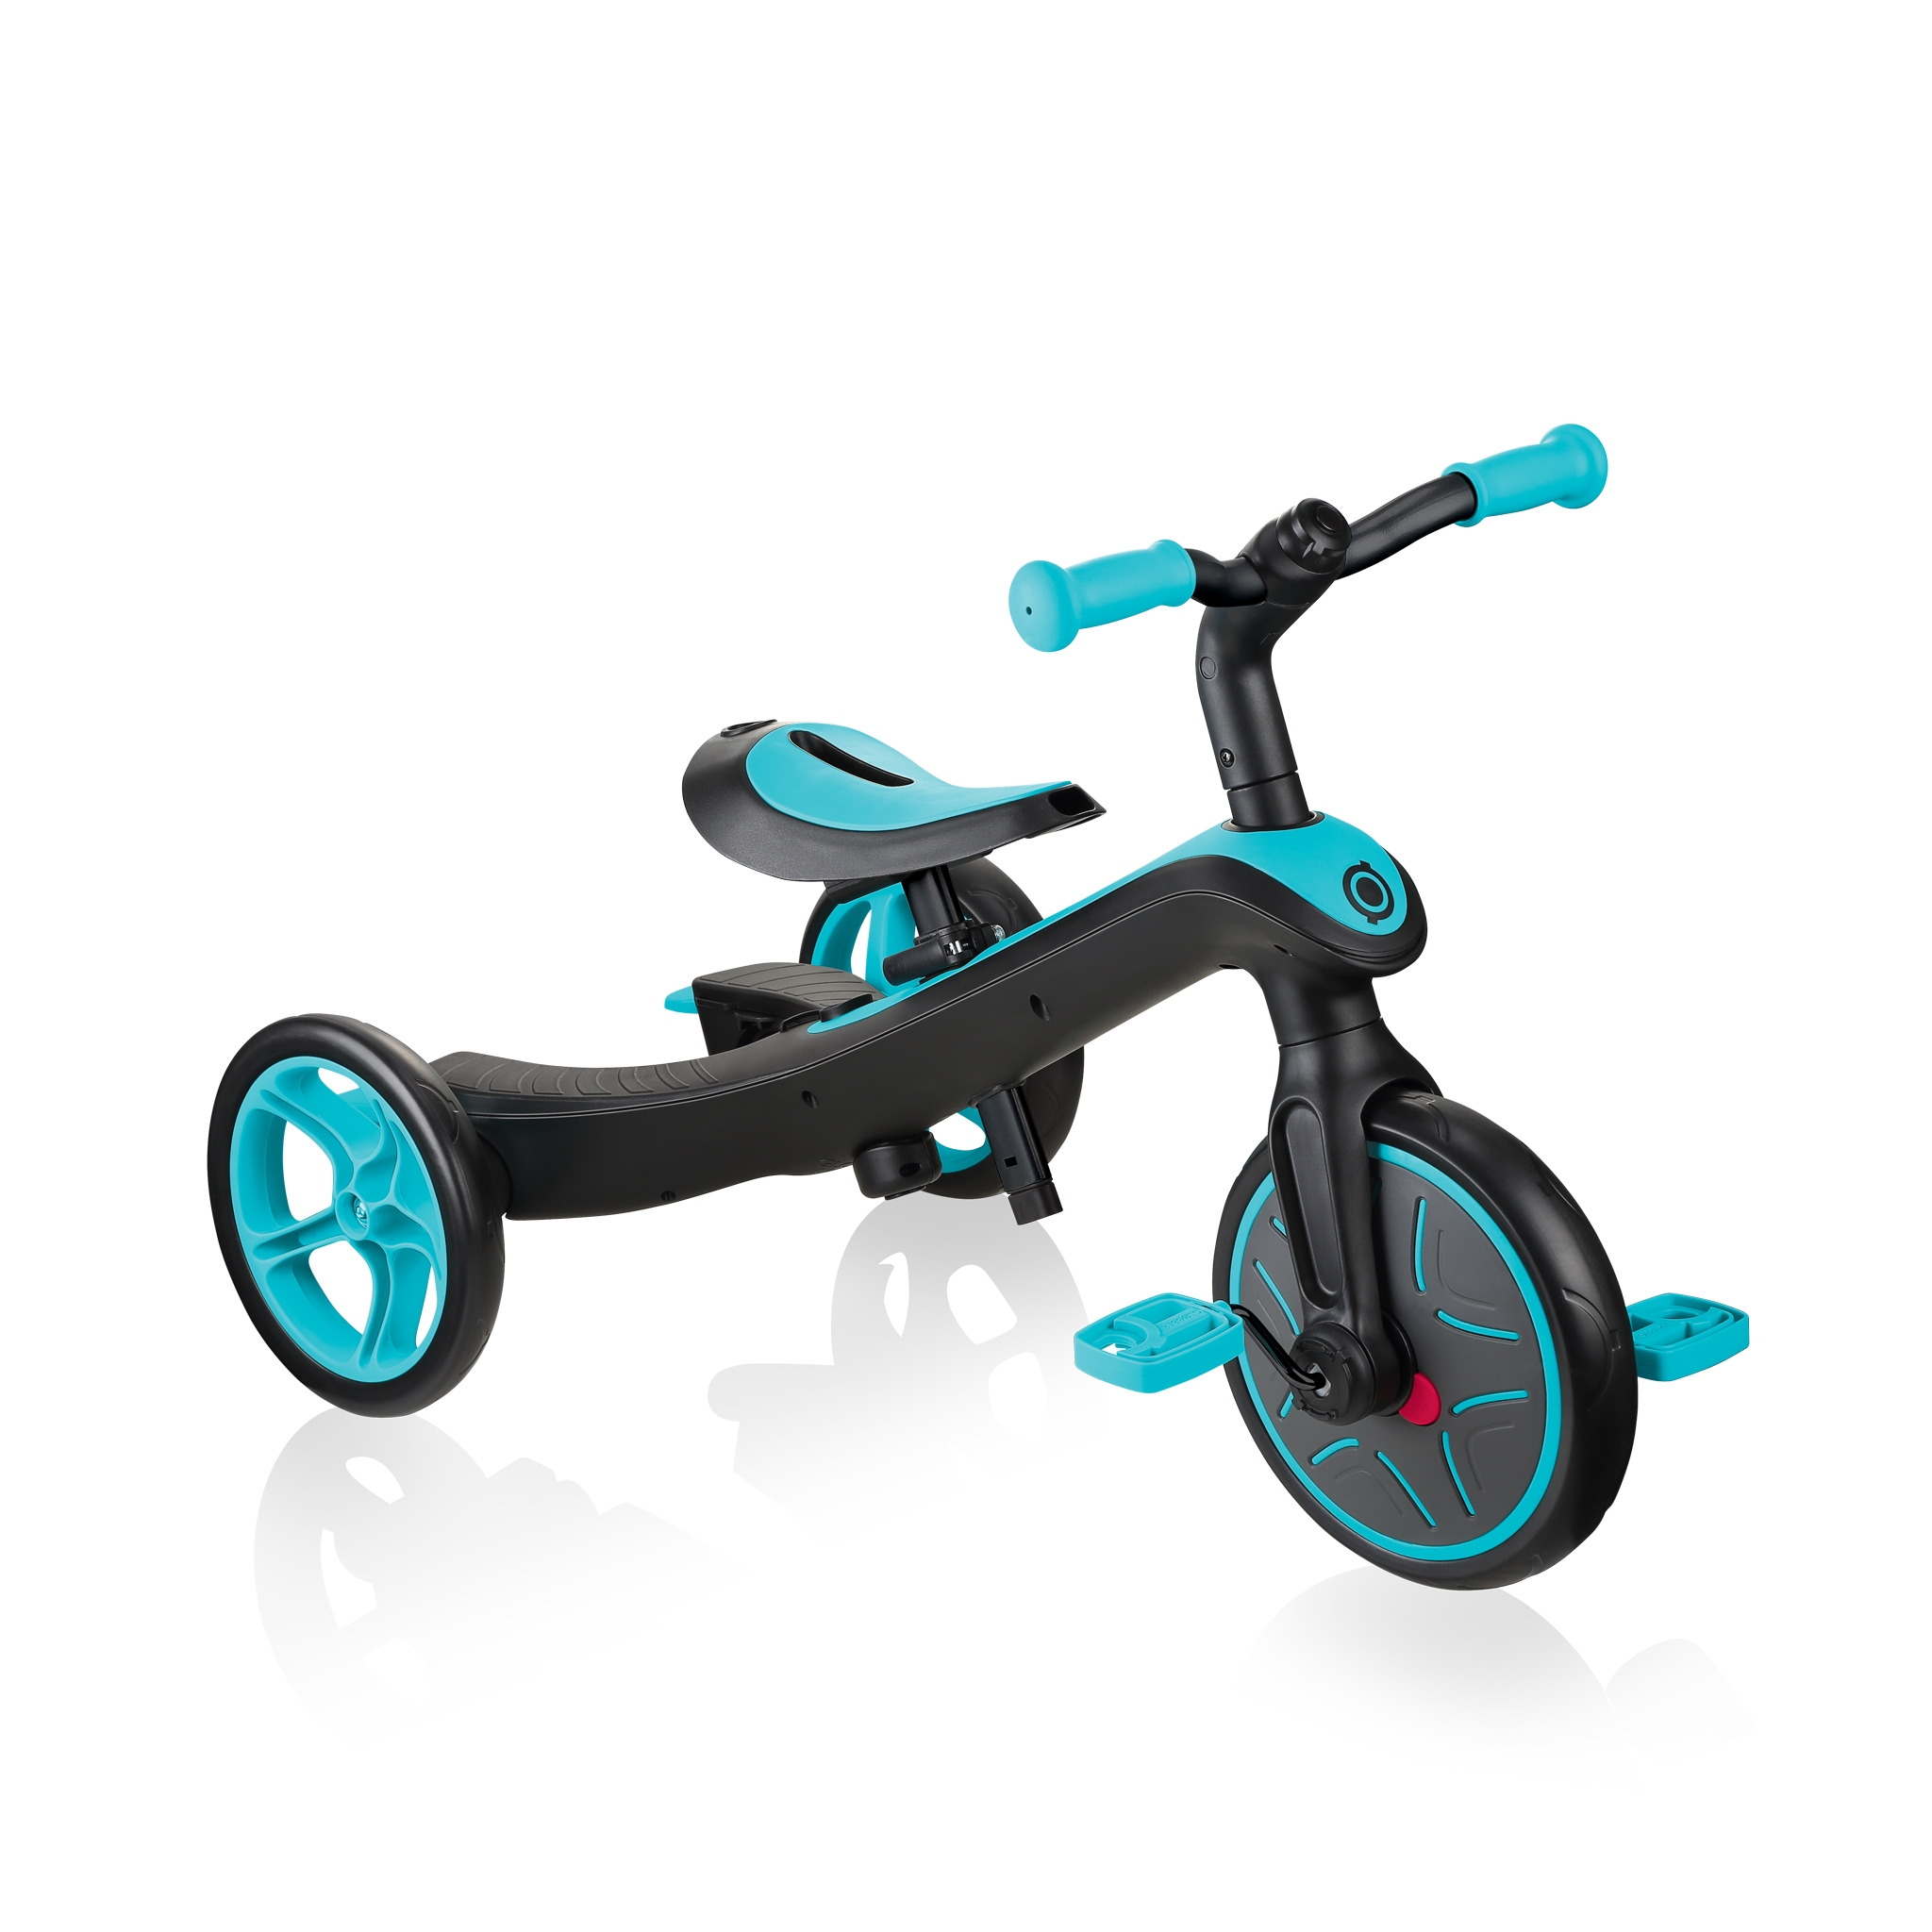 Globber-EXPLORER-TRIKE-3in1-all-in-one-baby-tricycle-and-kids-balance-bike-stage-2-training-trike_teal